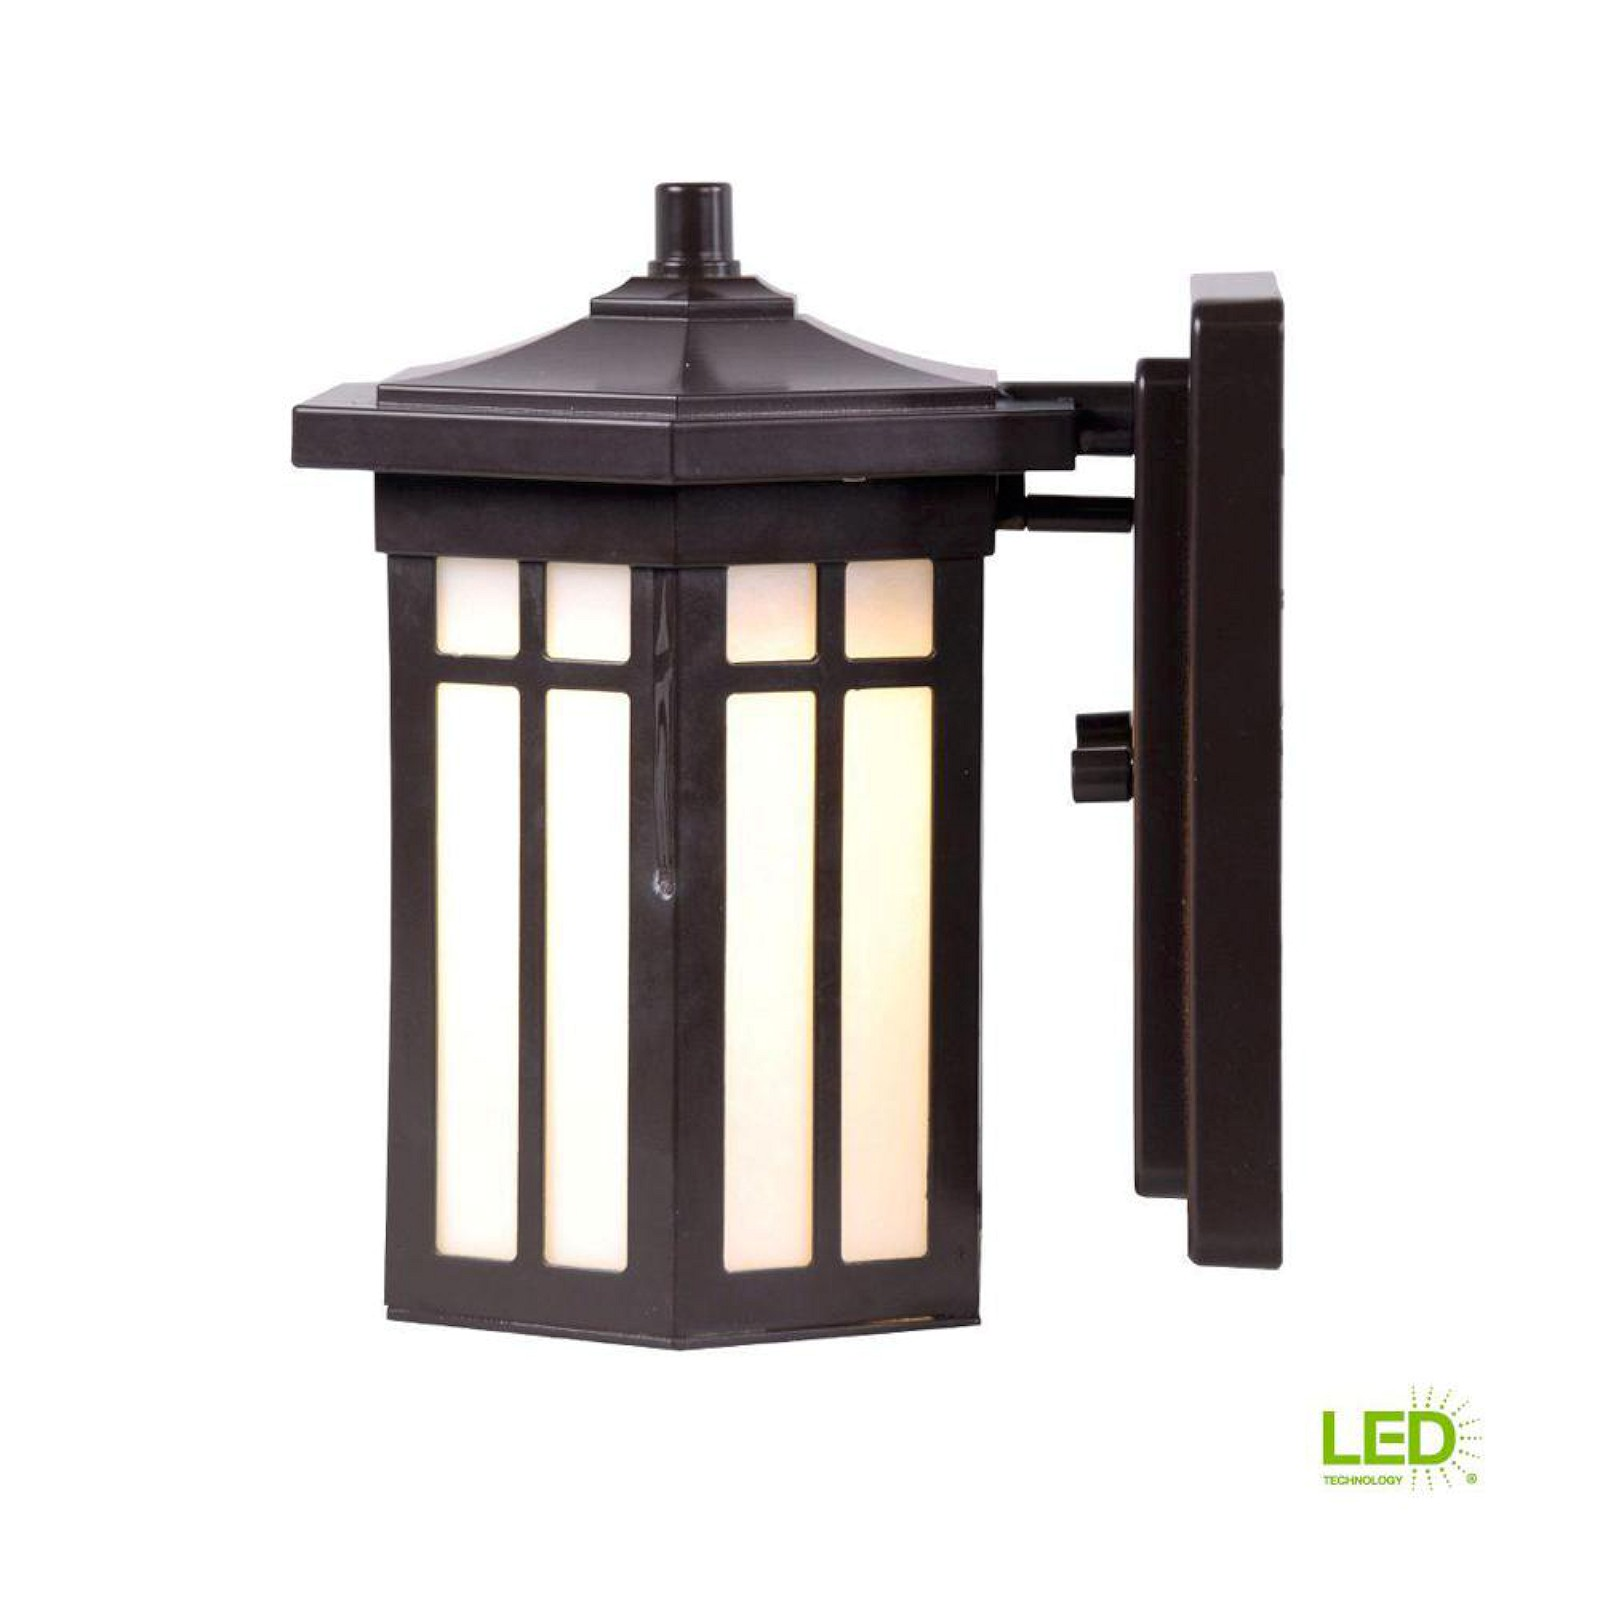 Details about home decorators collection antique bronze outdoor led small wall light dw7030abz